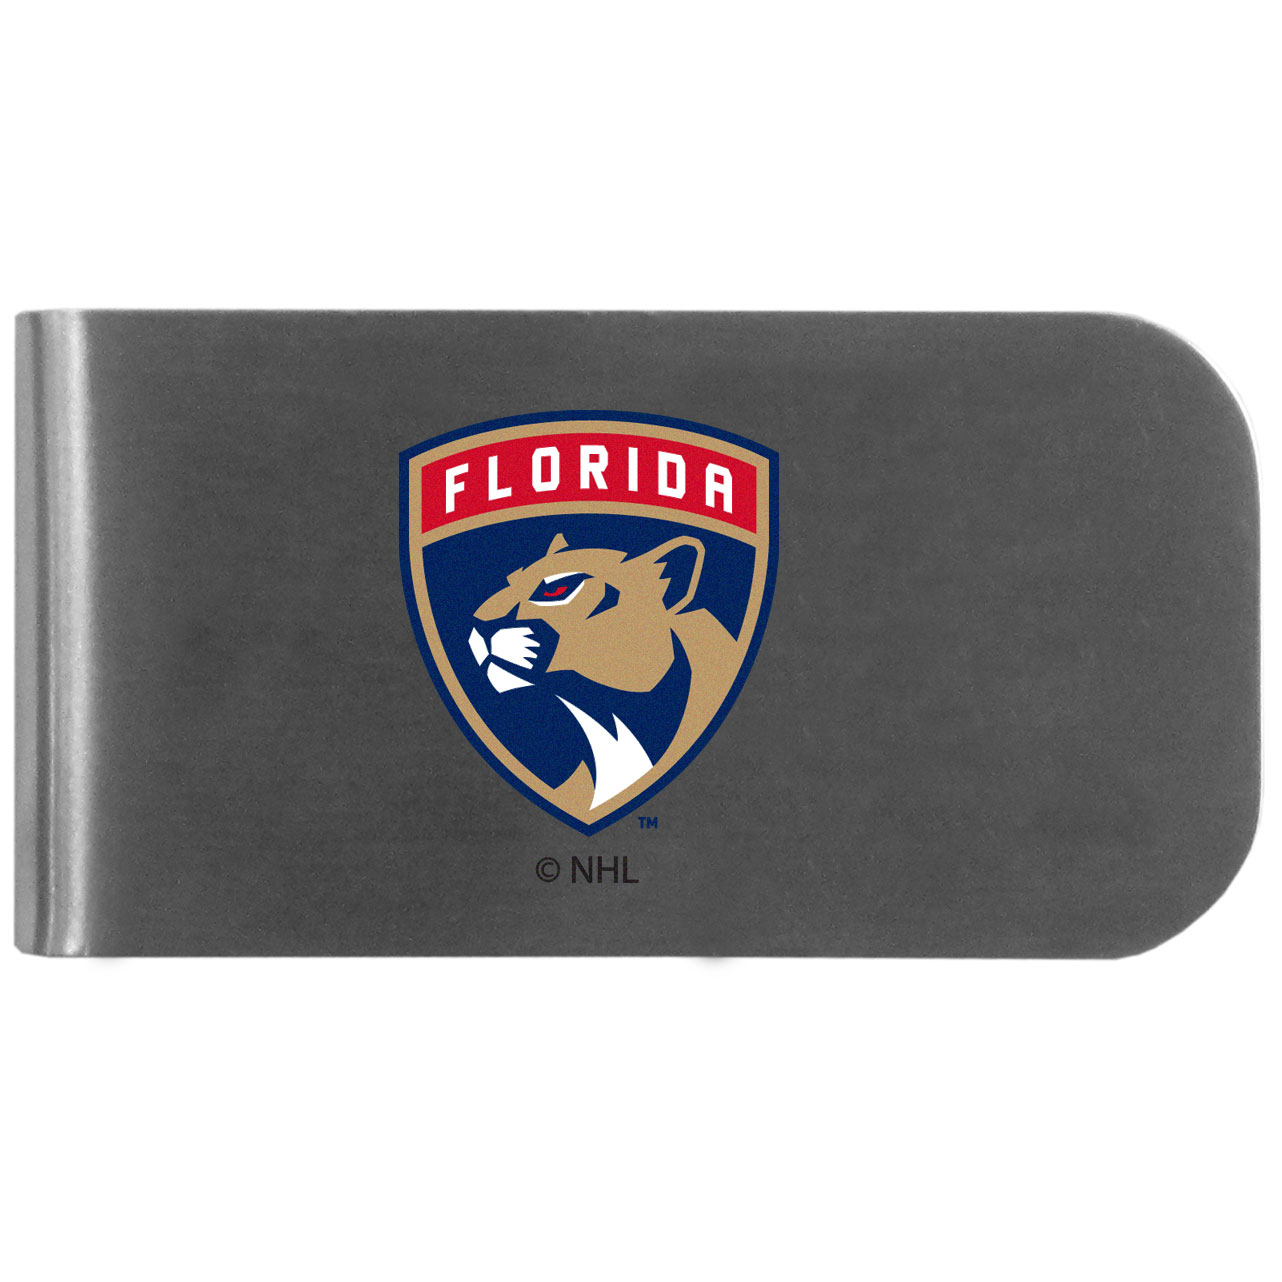 Florida Panthers Logo Bottle Opener Money Clip - This unique money clip features a classic, brushed-metal finish with a handy bottle opener feature on the back. The clip has the Florida Panthers logo expertly printed on the front of the clip.